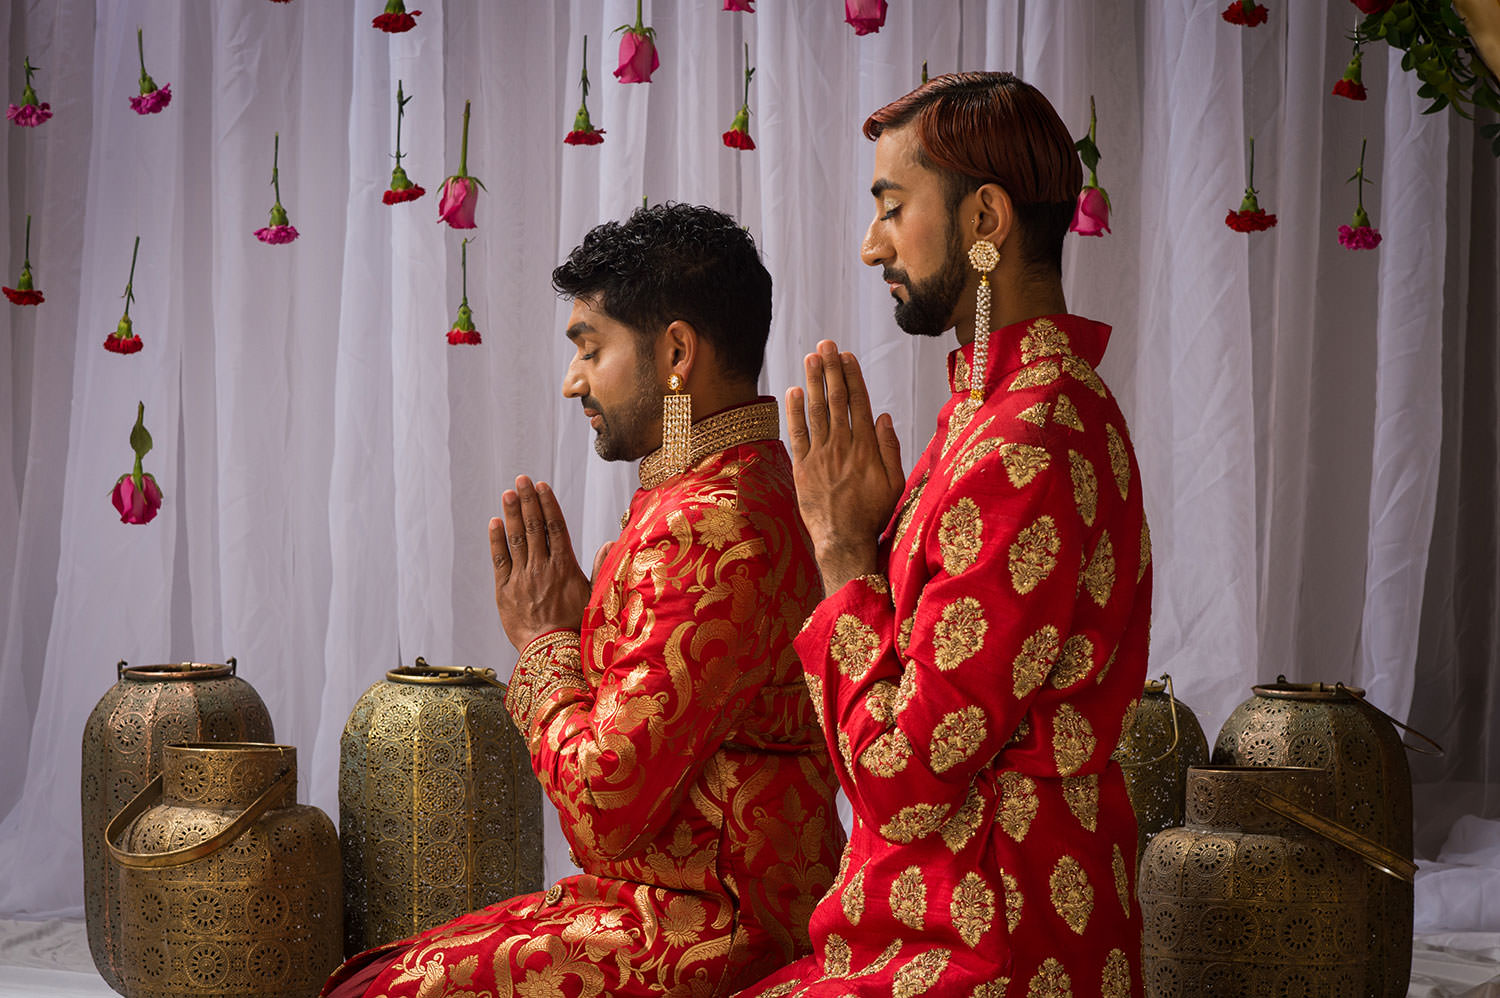 two men seen reflecting with their eyes closed and hands folded in a namaste